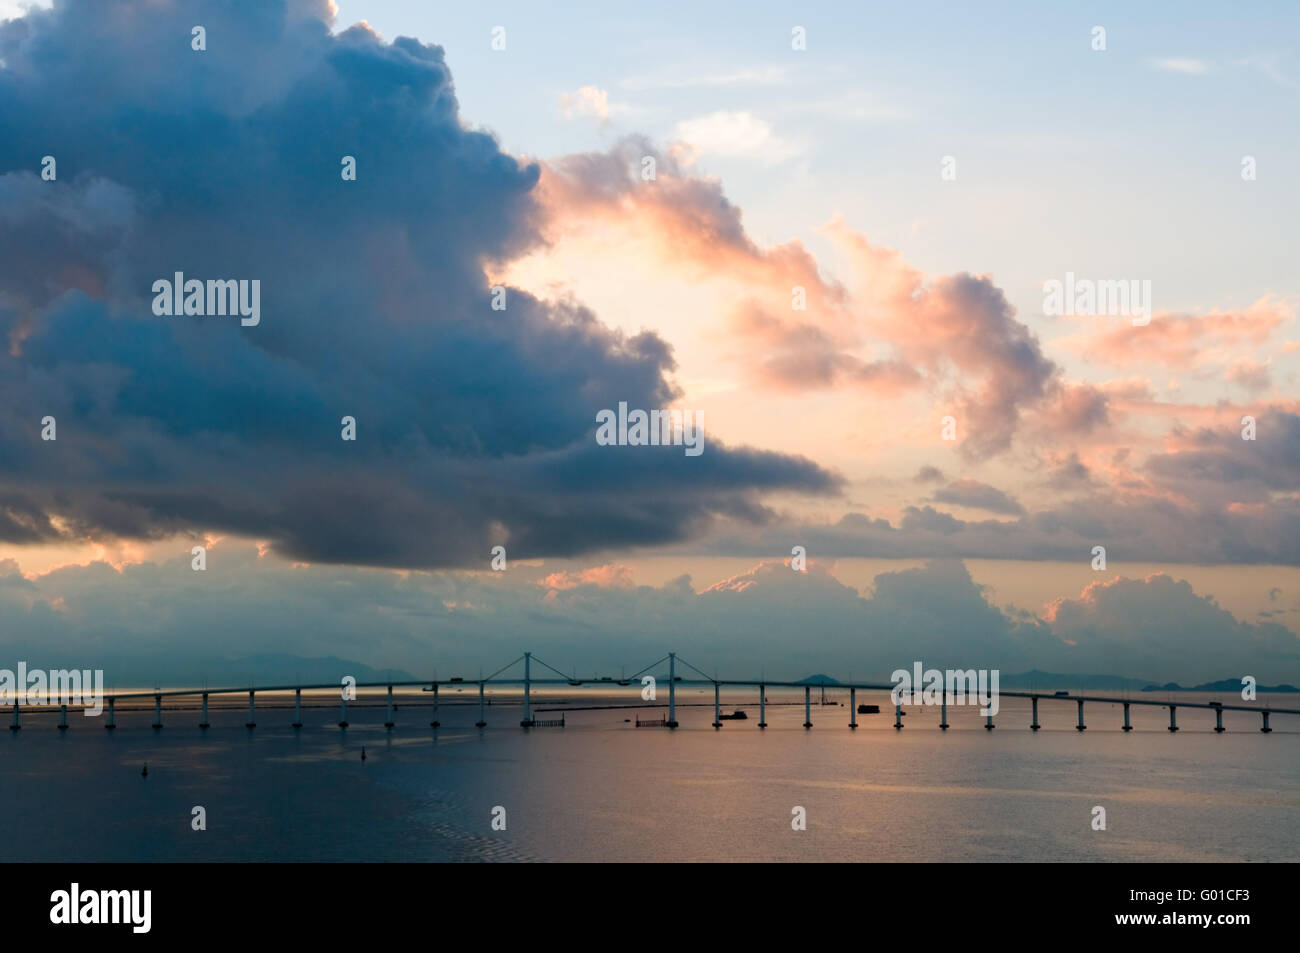 The panorama of friendship birdge at daybreak - Stock Image